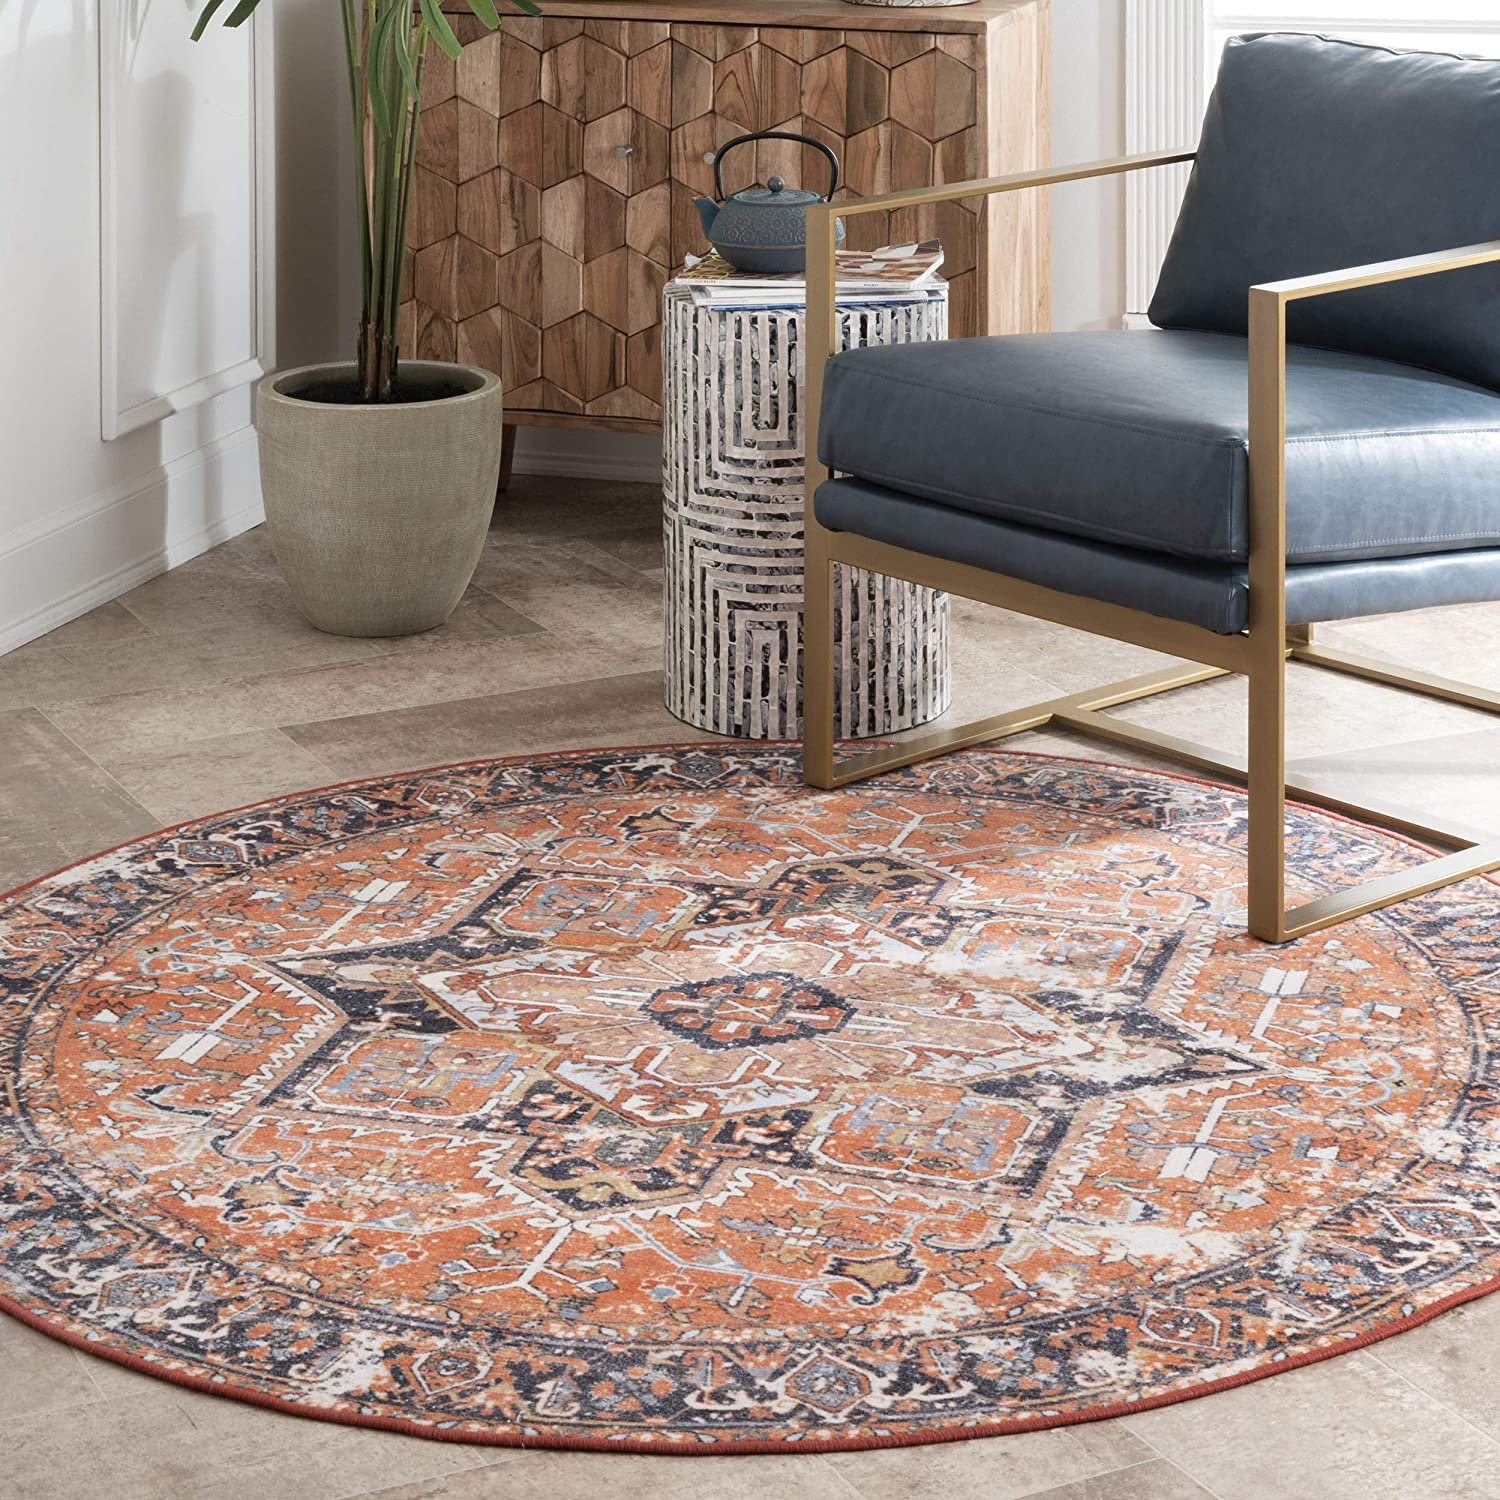 Shop nuLOOM Florence Vintage Persian Area Rug, 8' Round, Rust from Amazon on Openhaus